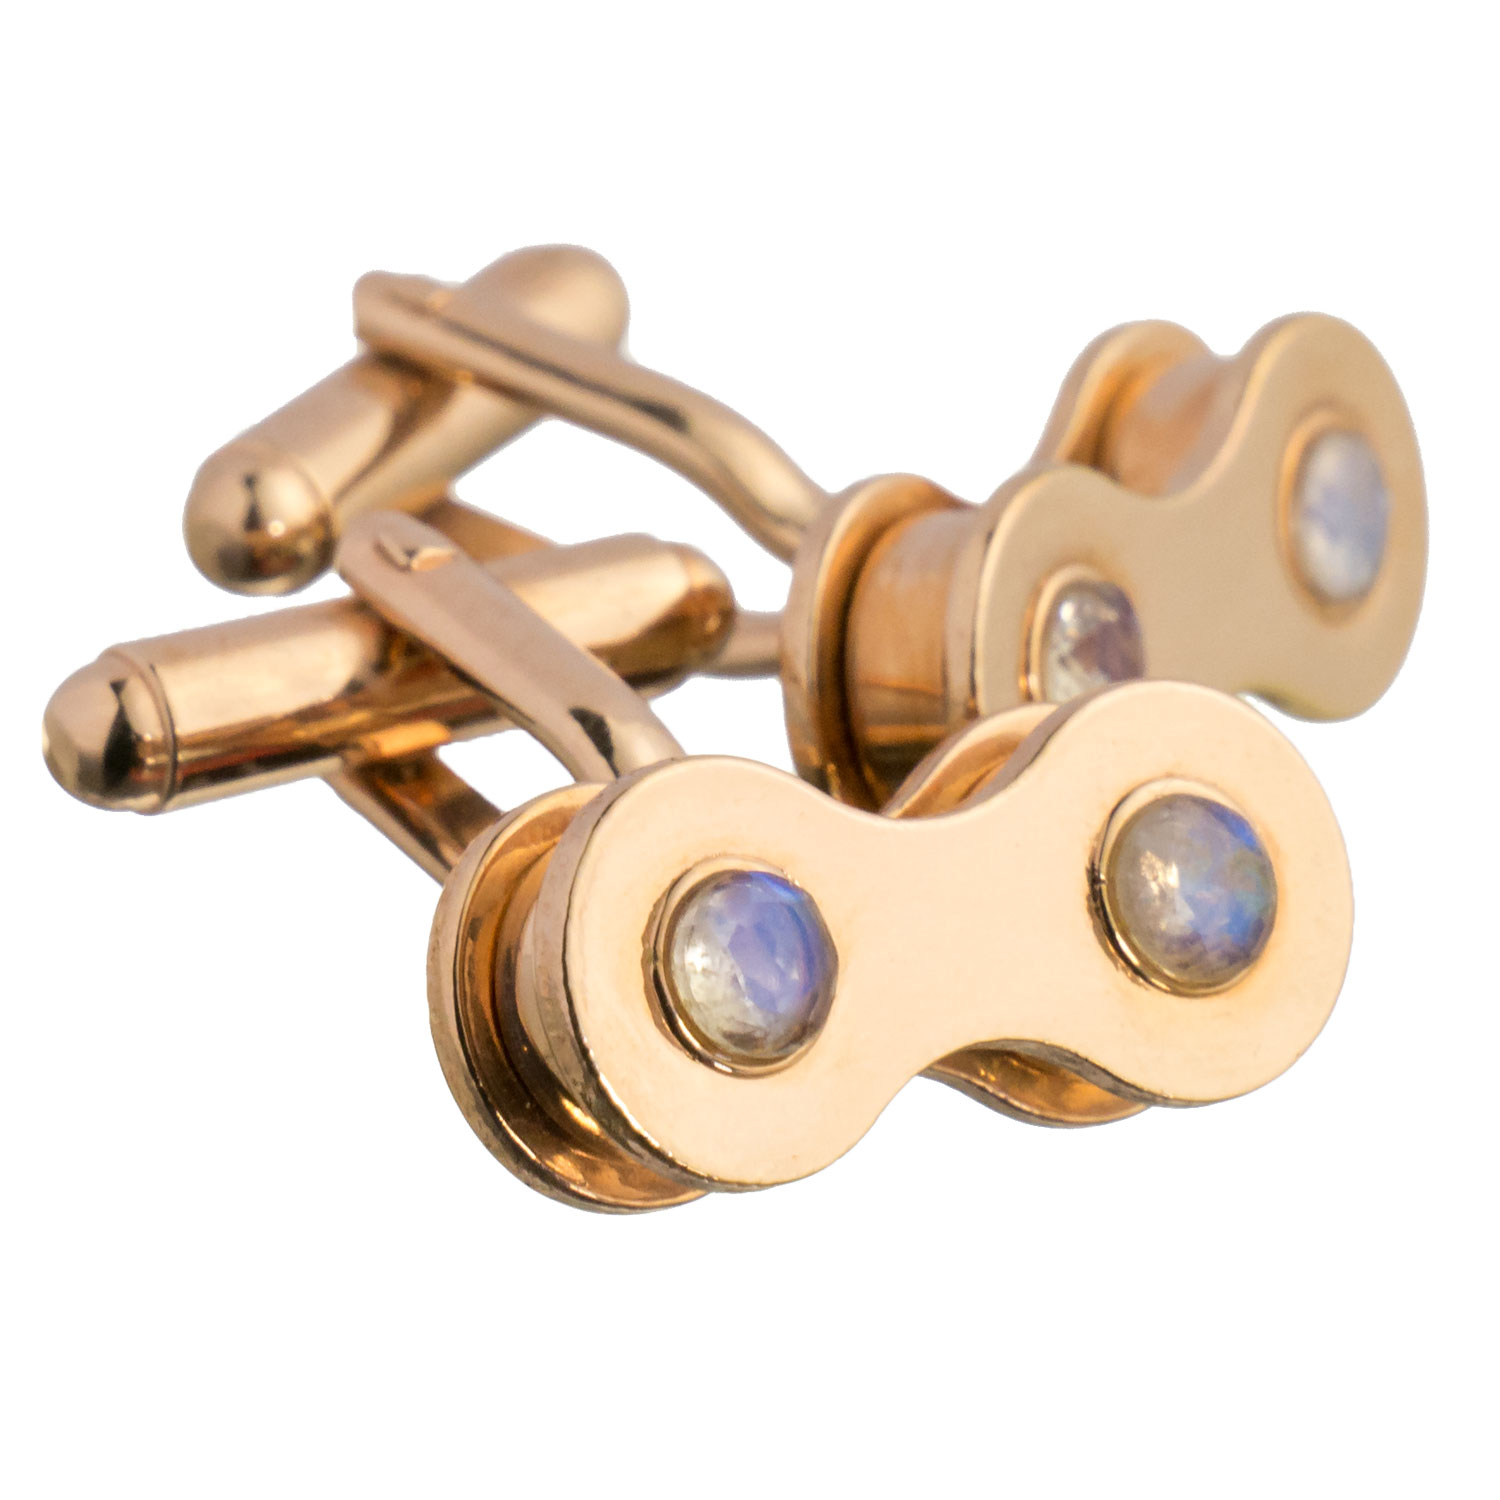 Rose gold cufflinks with moonstone